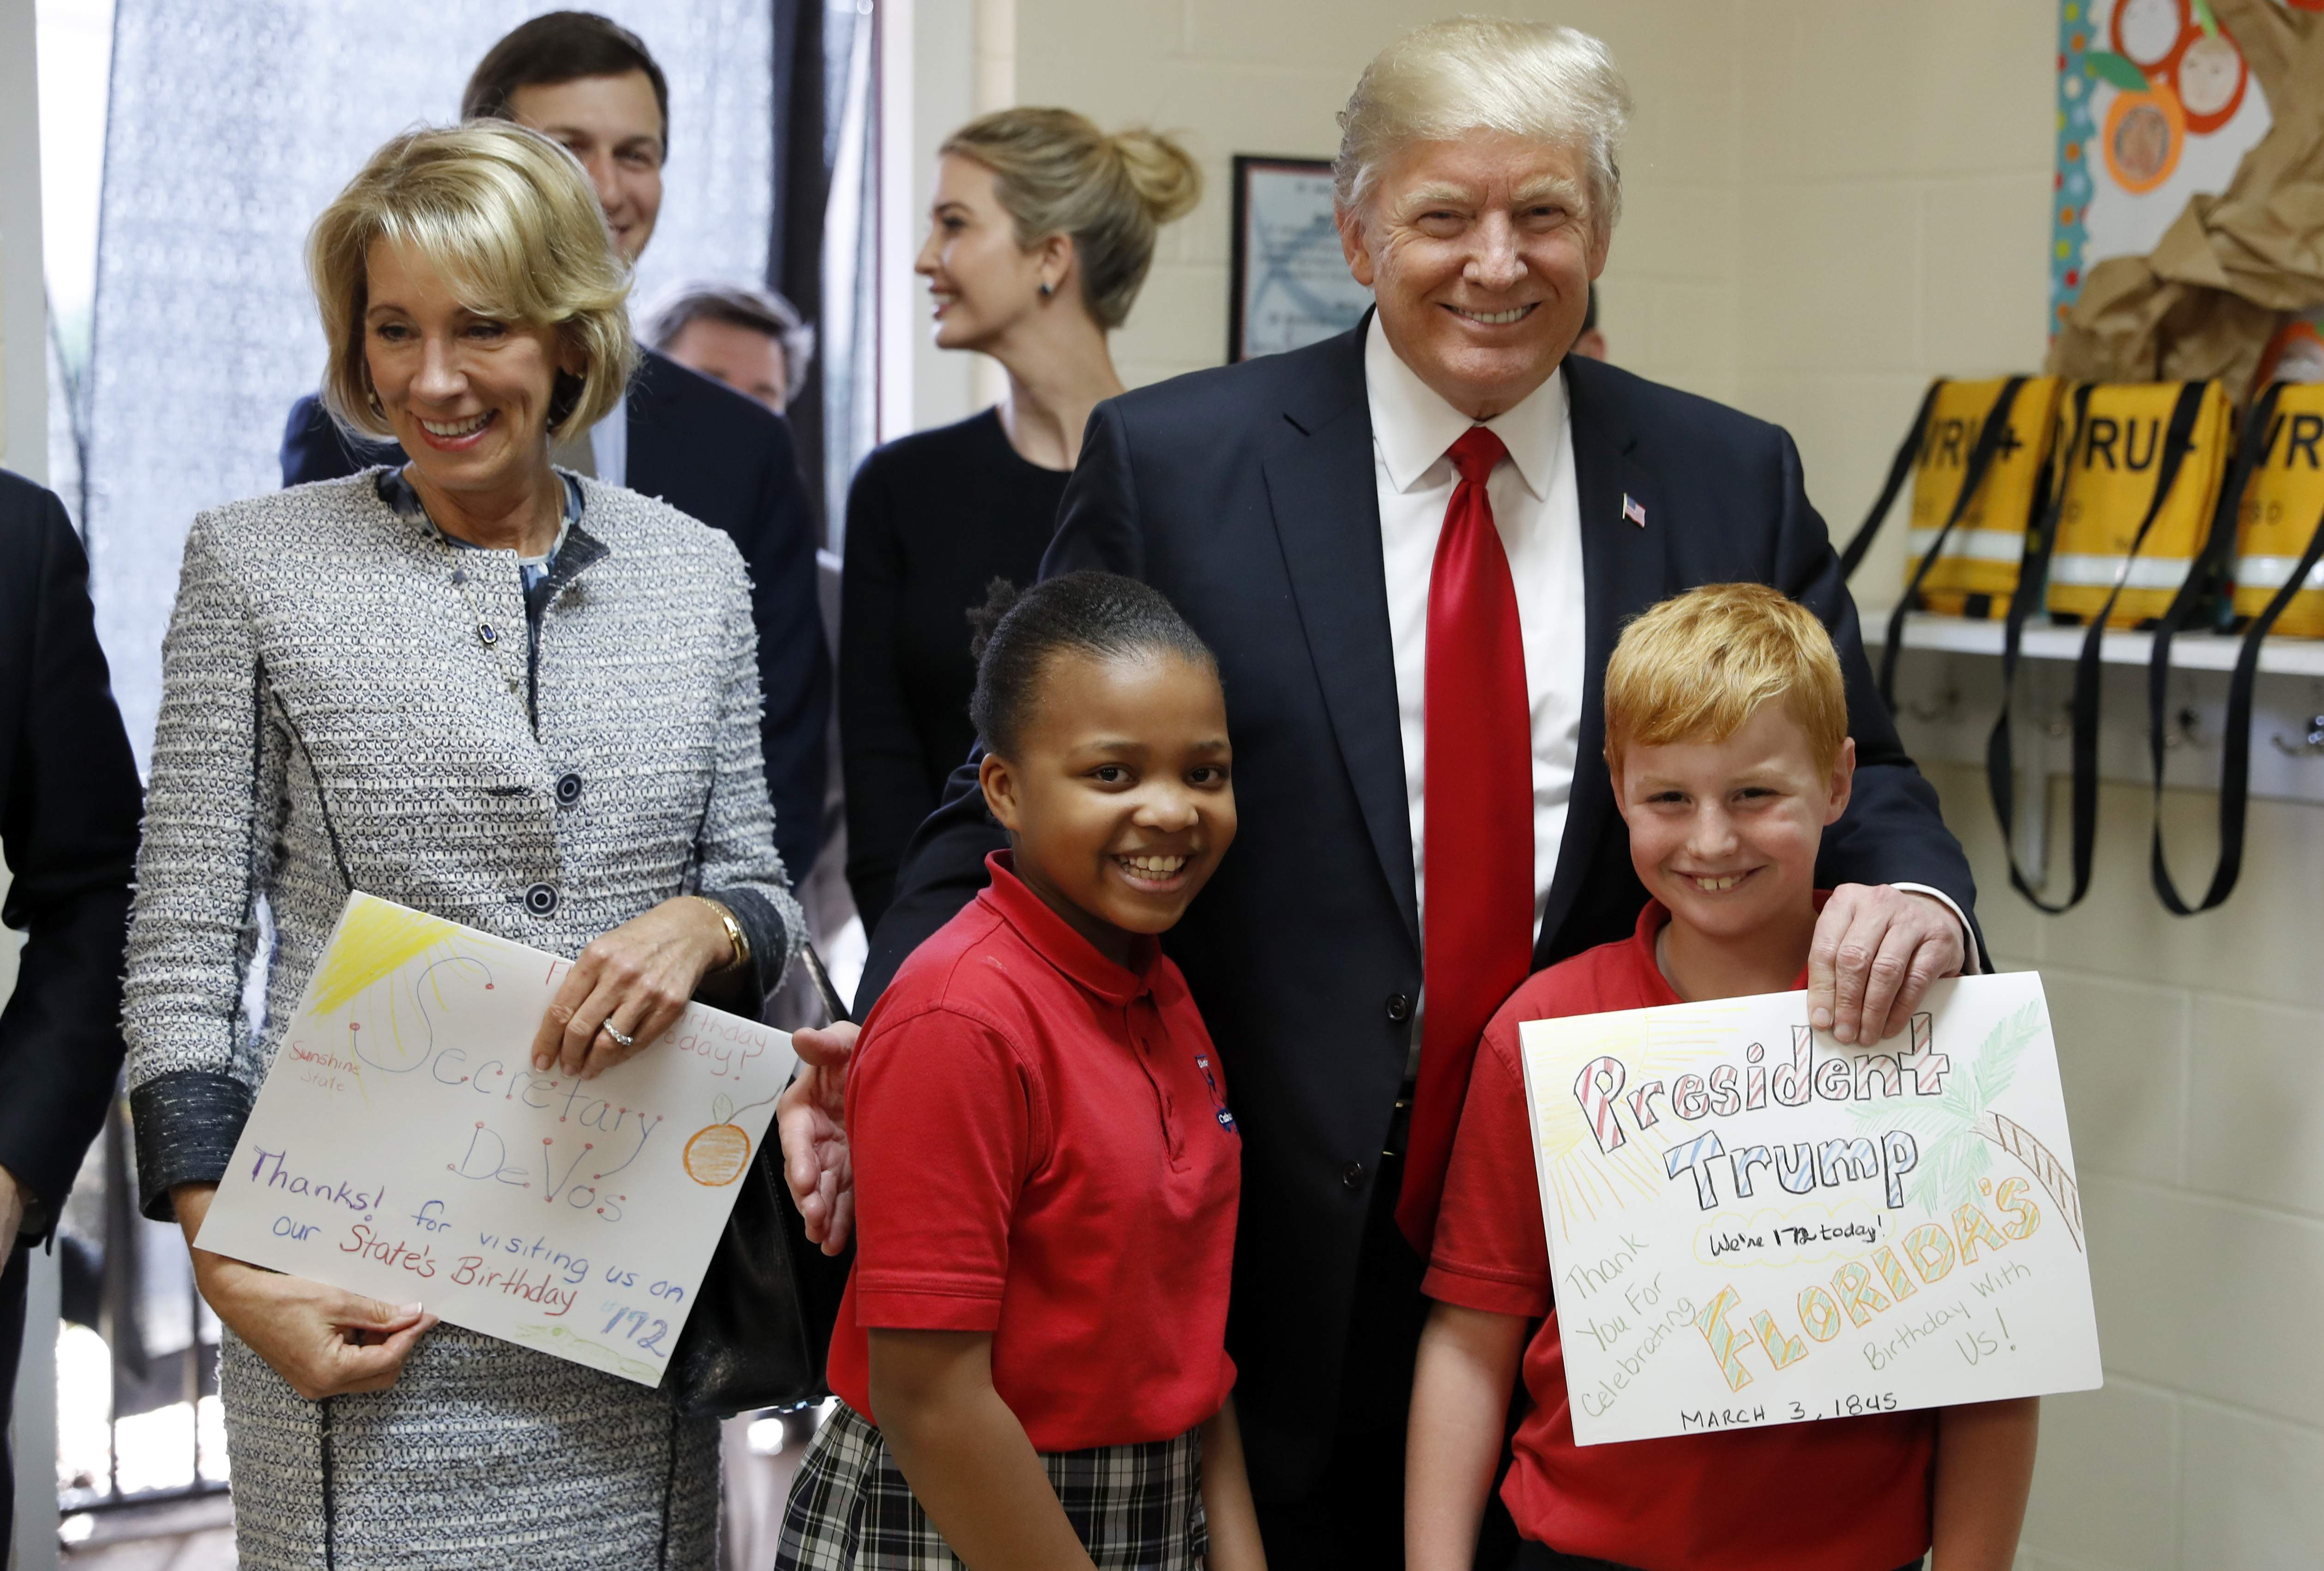 DAY 43 - In this March 3, 2017, file photo, President Donald Trump and Education Secretary Betsy DeVos pose with fourth graders Janayah Chatelier, 10, left, Landon Fritz, 10, after they received cards from the children, during a tour of Saint Andrew Catholic School in Orlando, Fla. (AP Photo/Alex Brandon, file)